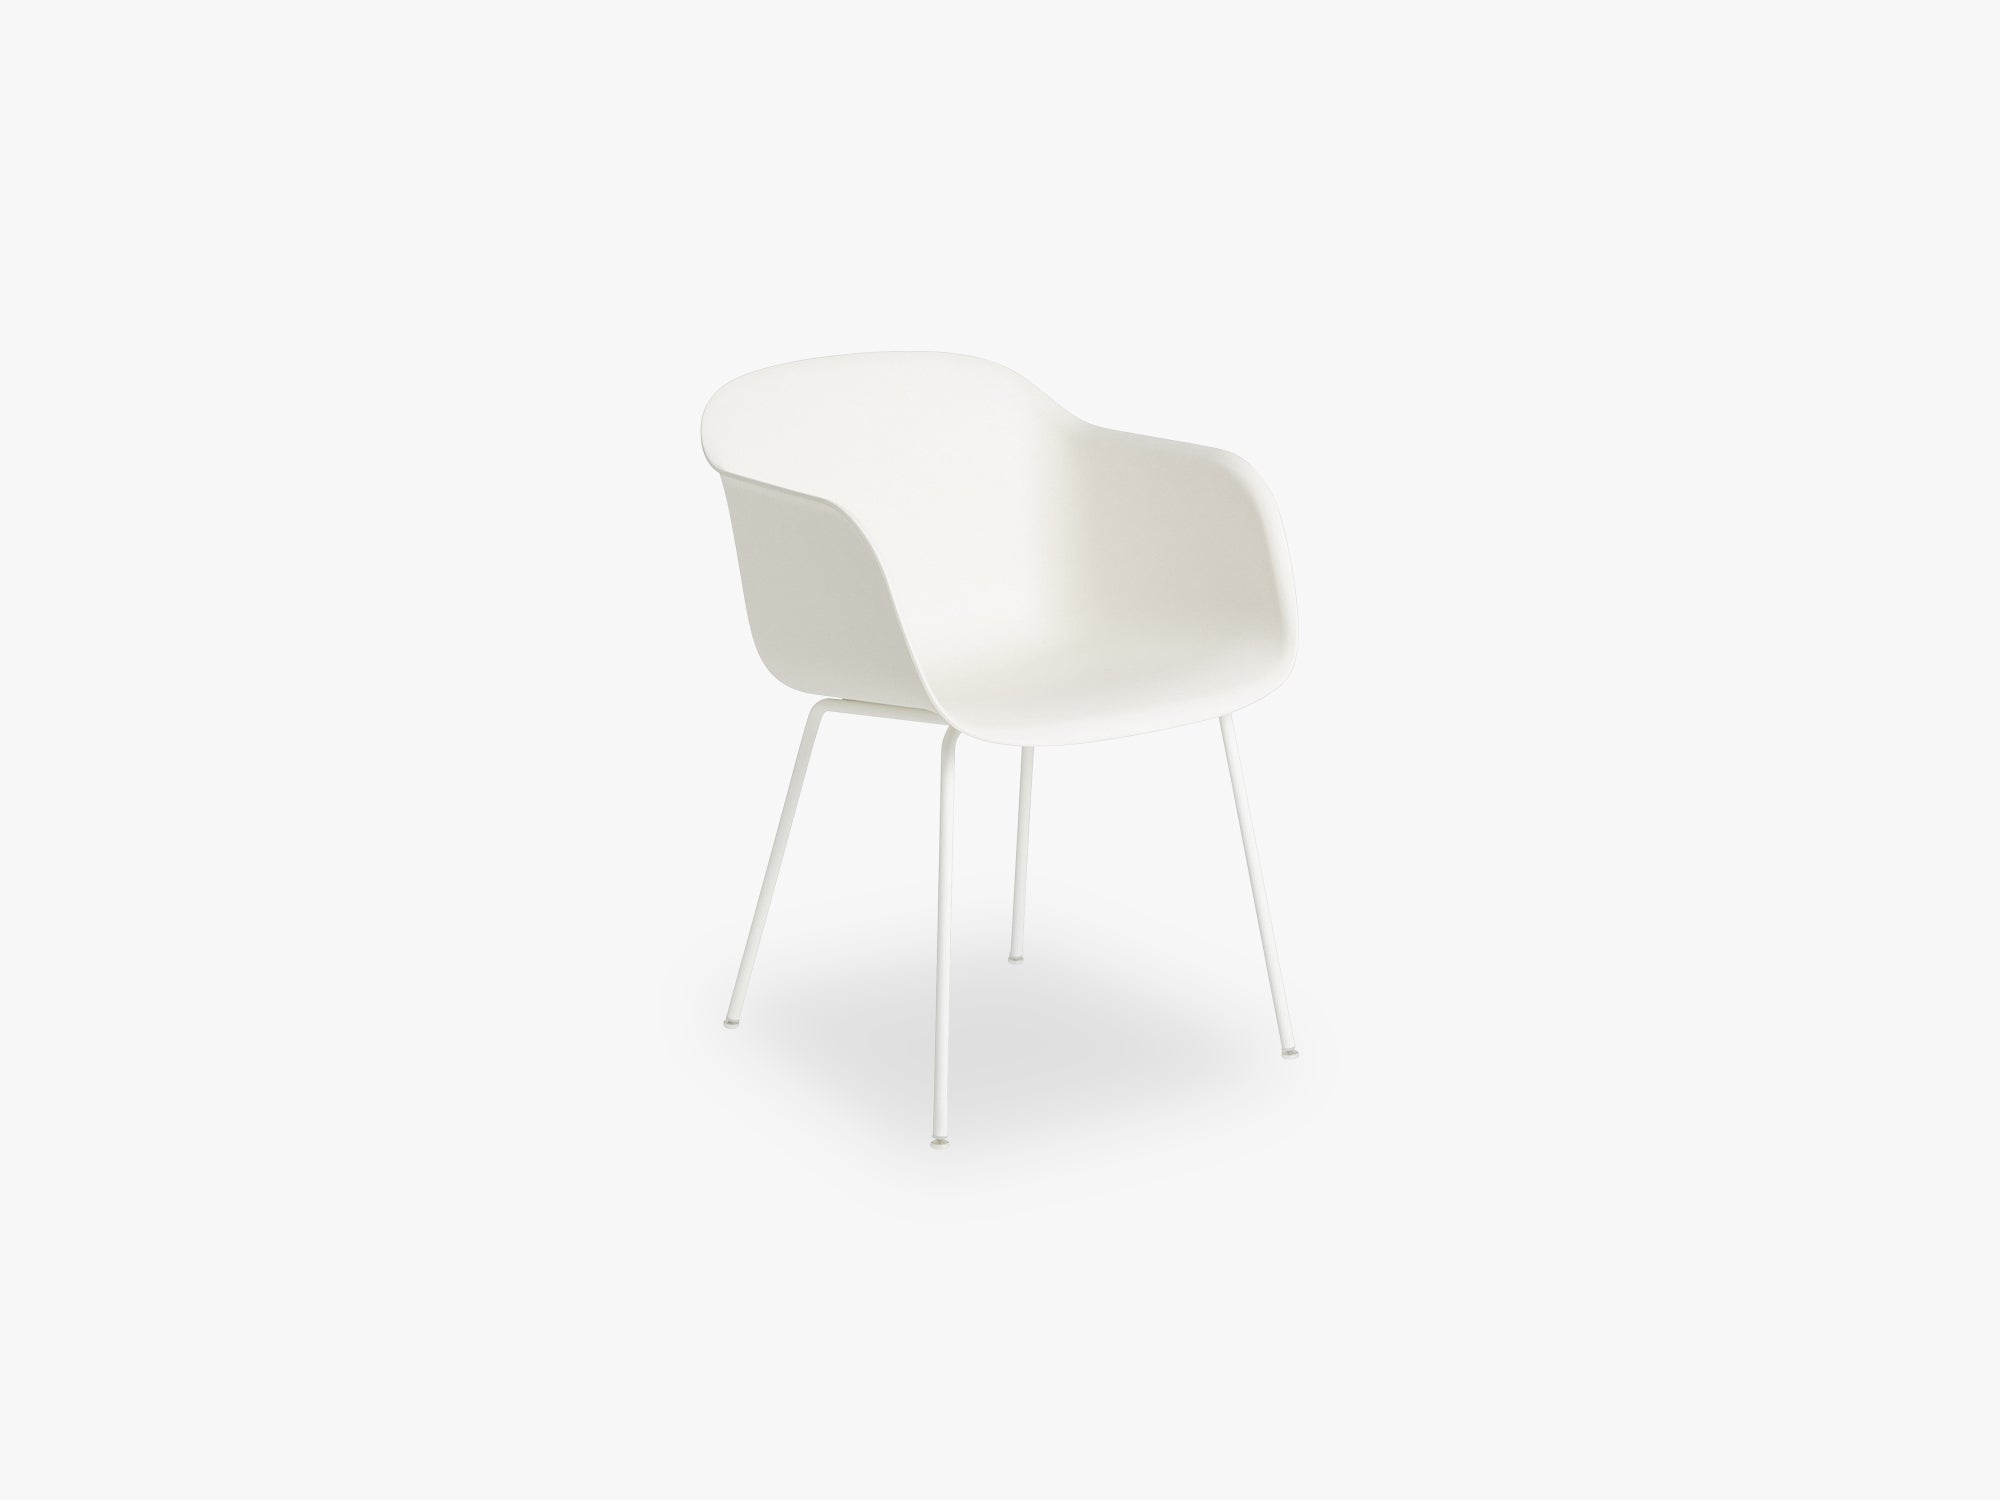 Fiber Armchair - Tube Base - Normal Shell, Natural White/White fra Muuto